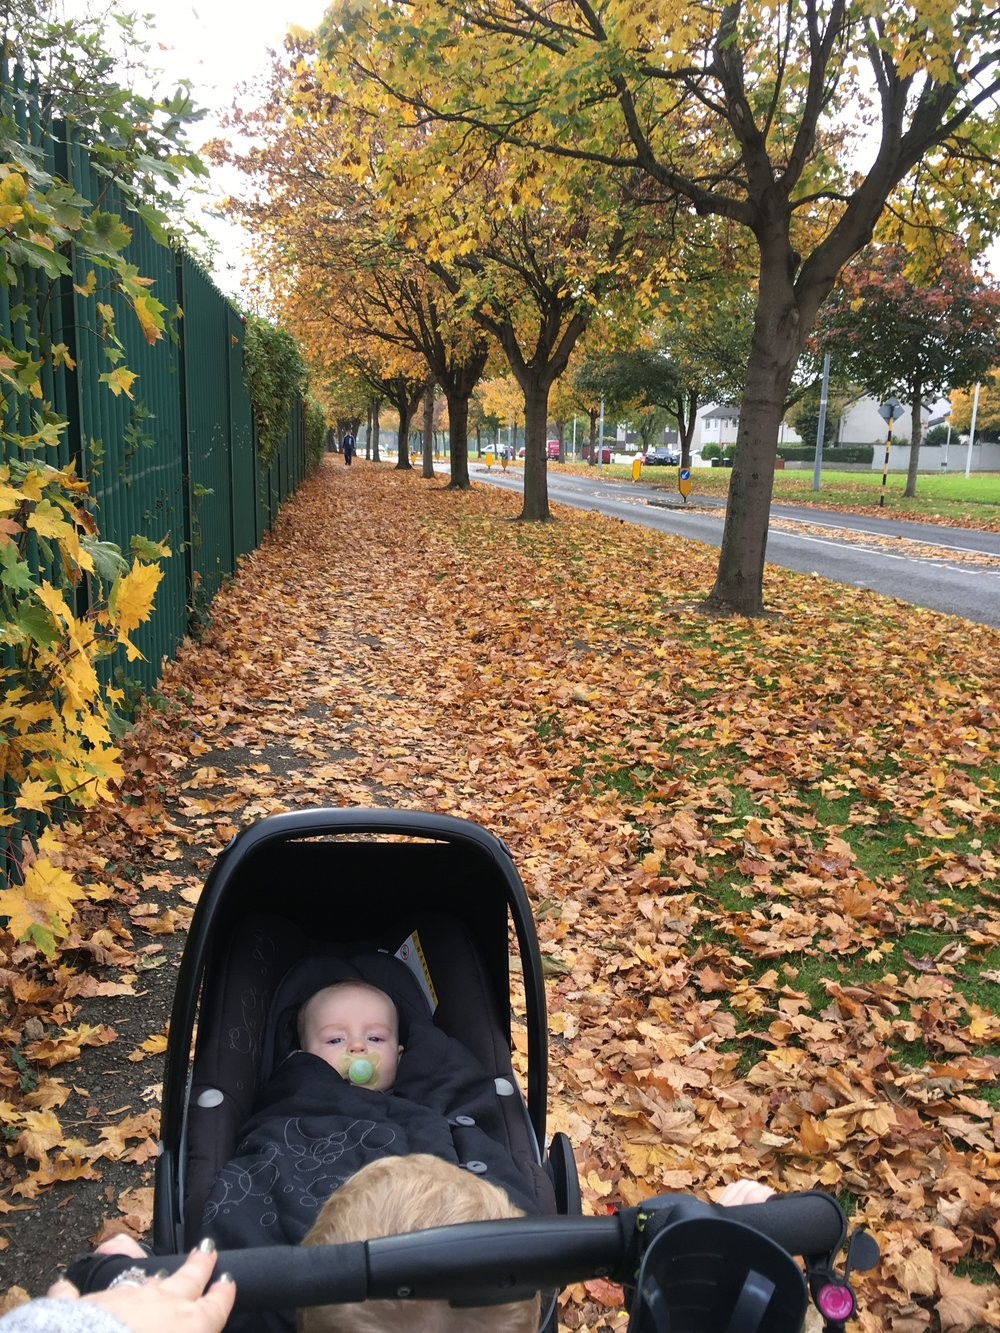 We went for an Autumn walk today!